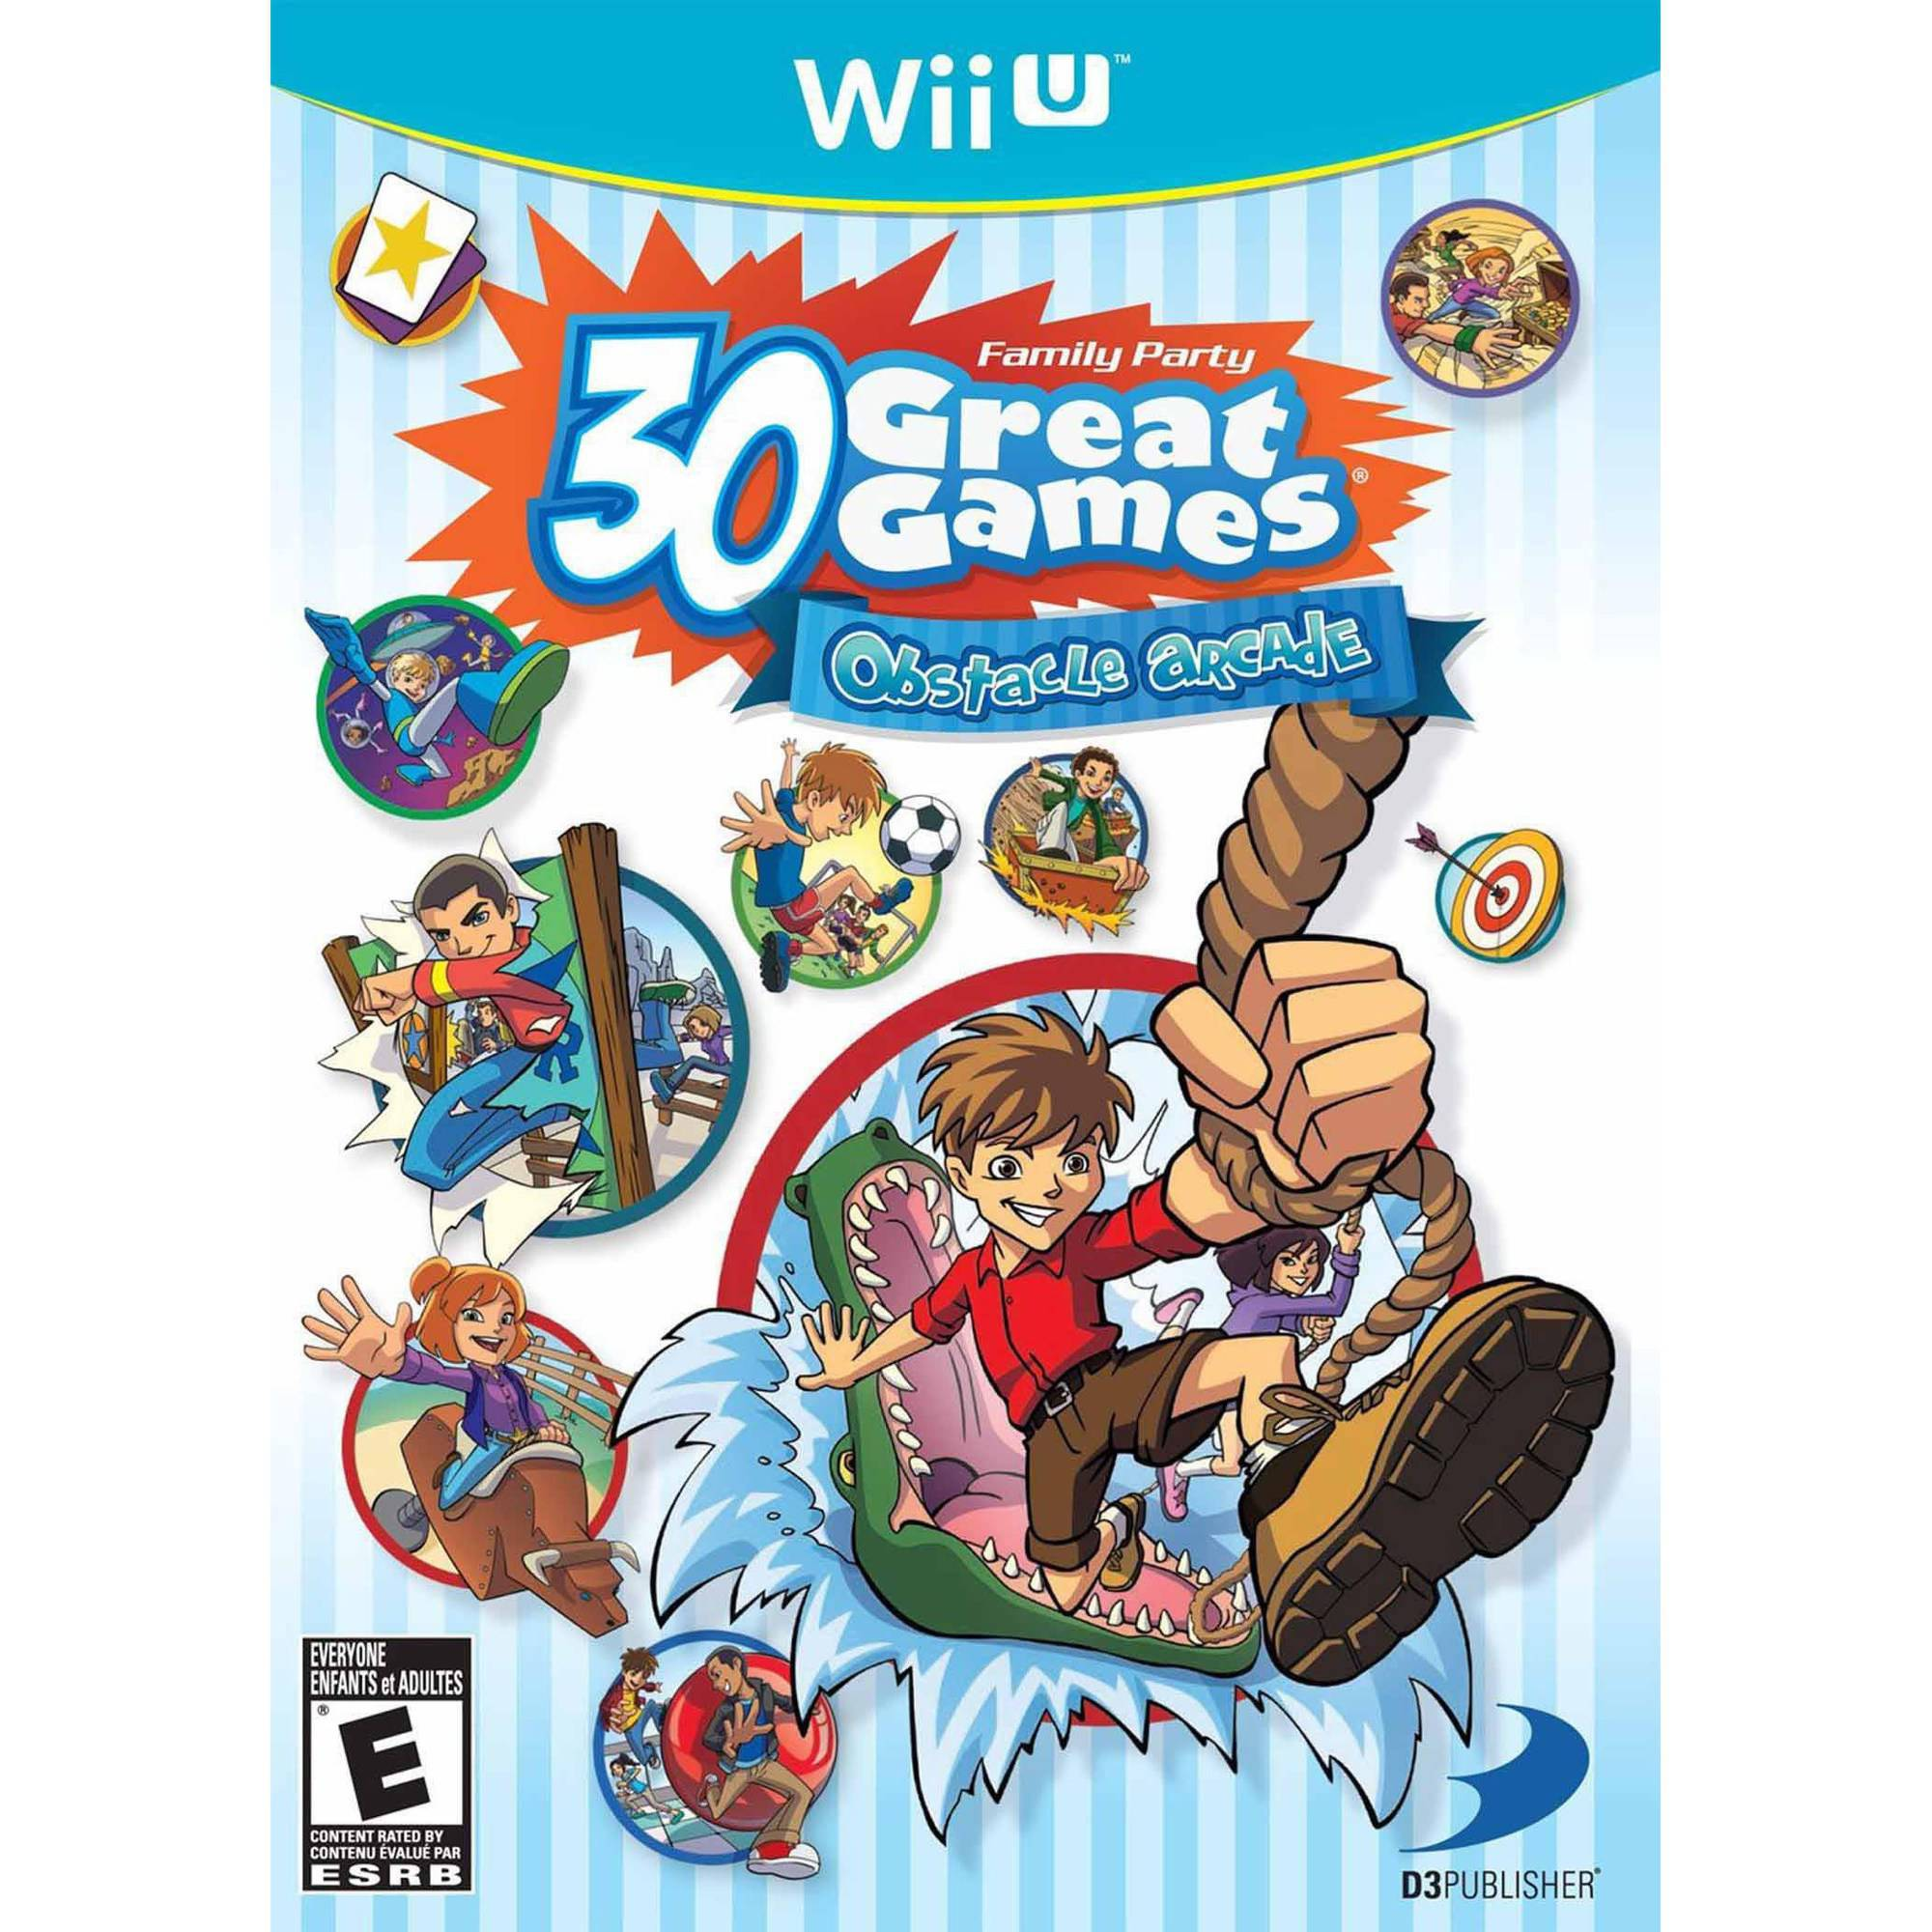 Family Party 30 Great Games Obstacle Arcade Wii U